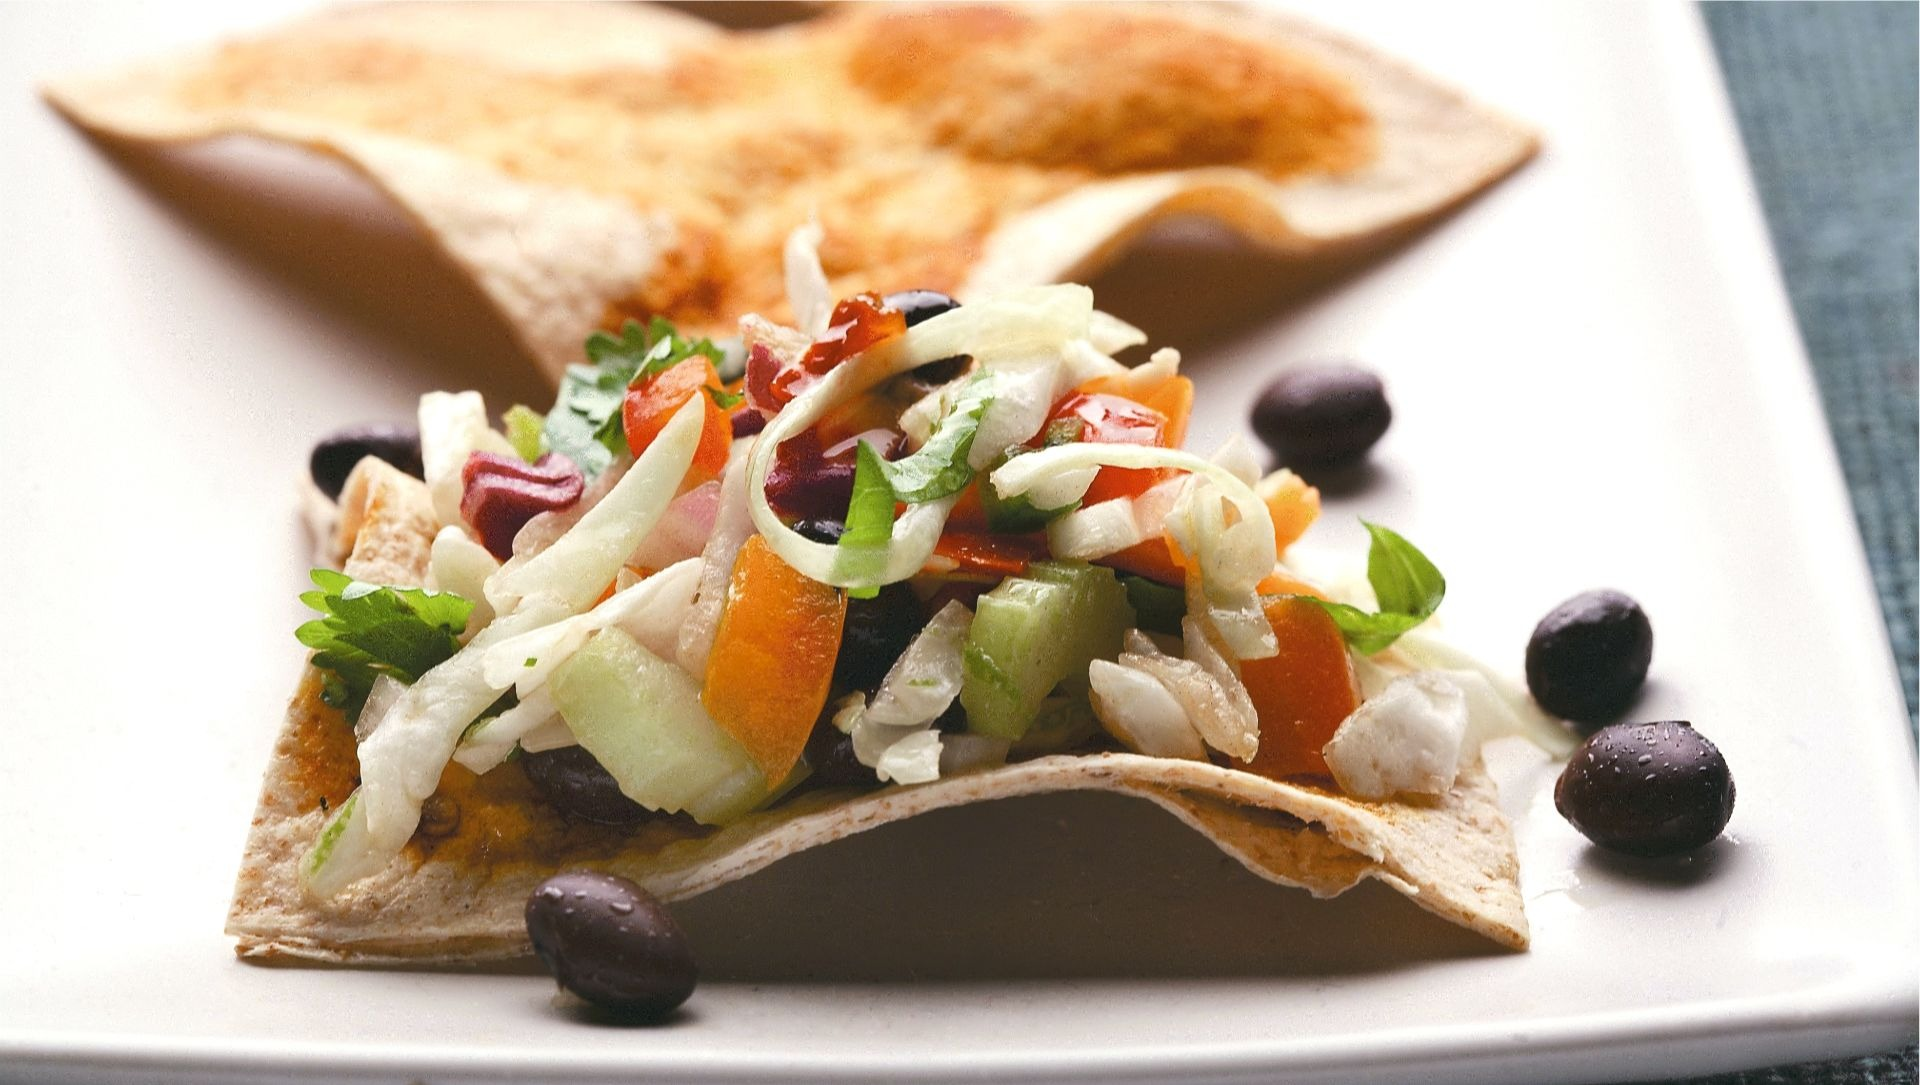 Zesty coleslaw with tortilla triangles on a white plate.